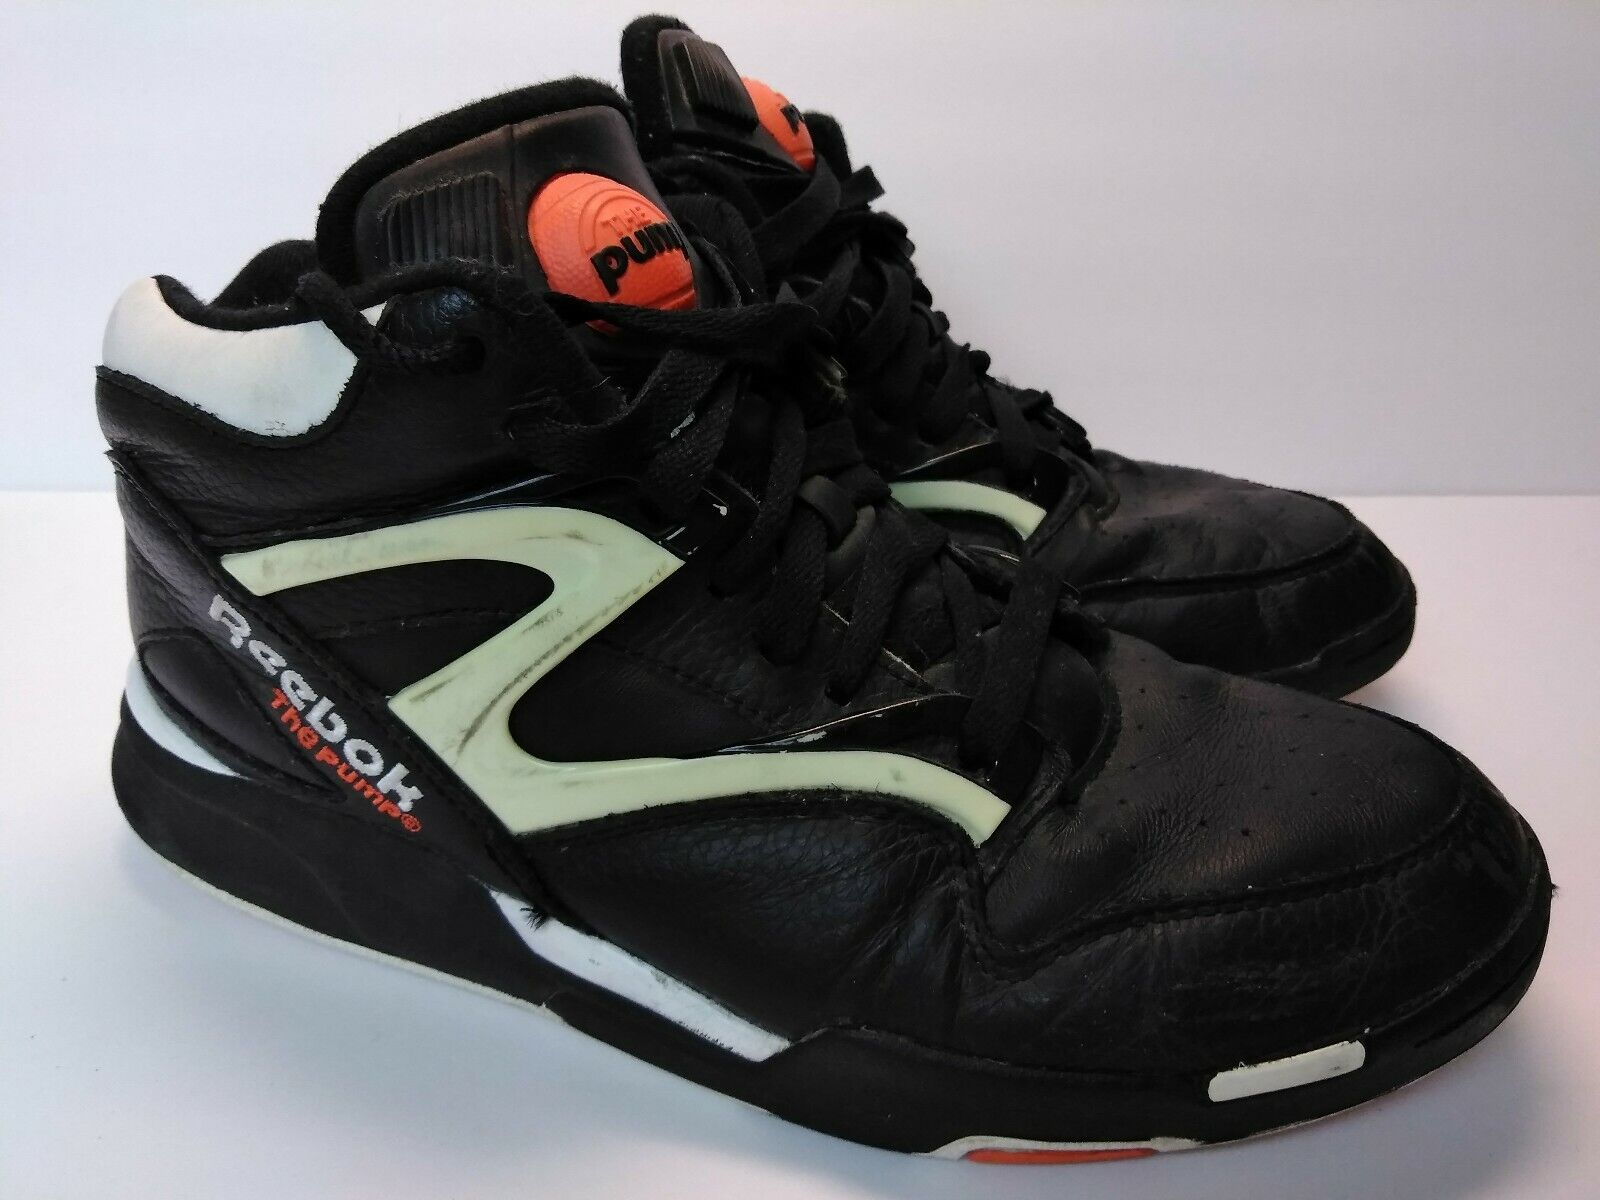 Reebok Pump Omni Lite Retro Dee Brown Black Orange White Style J15298 Size 11